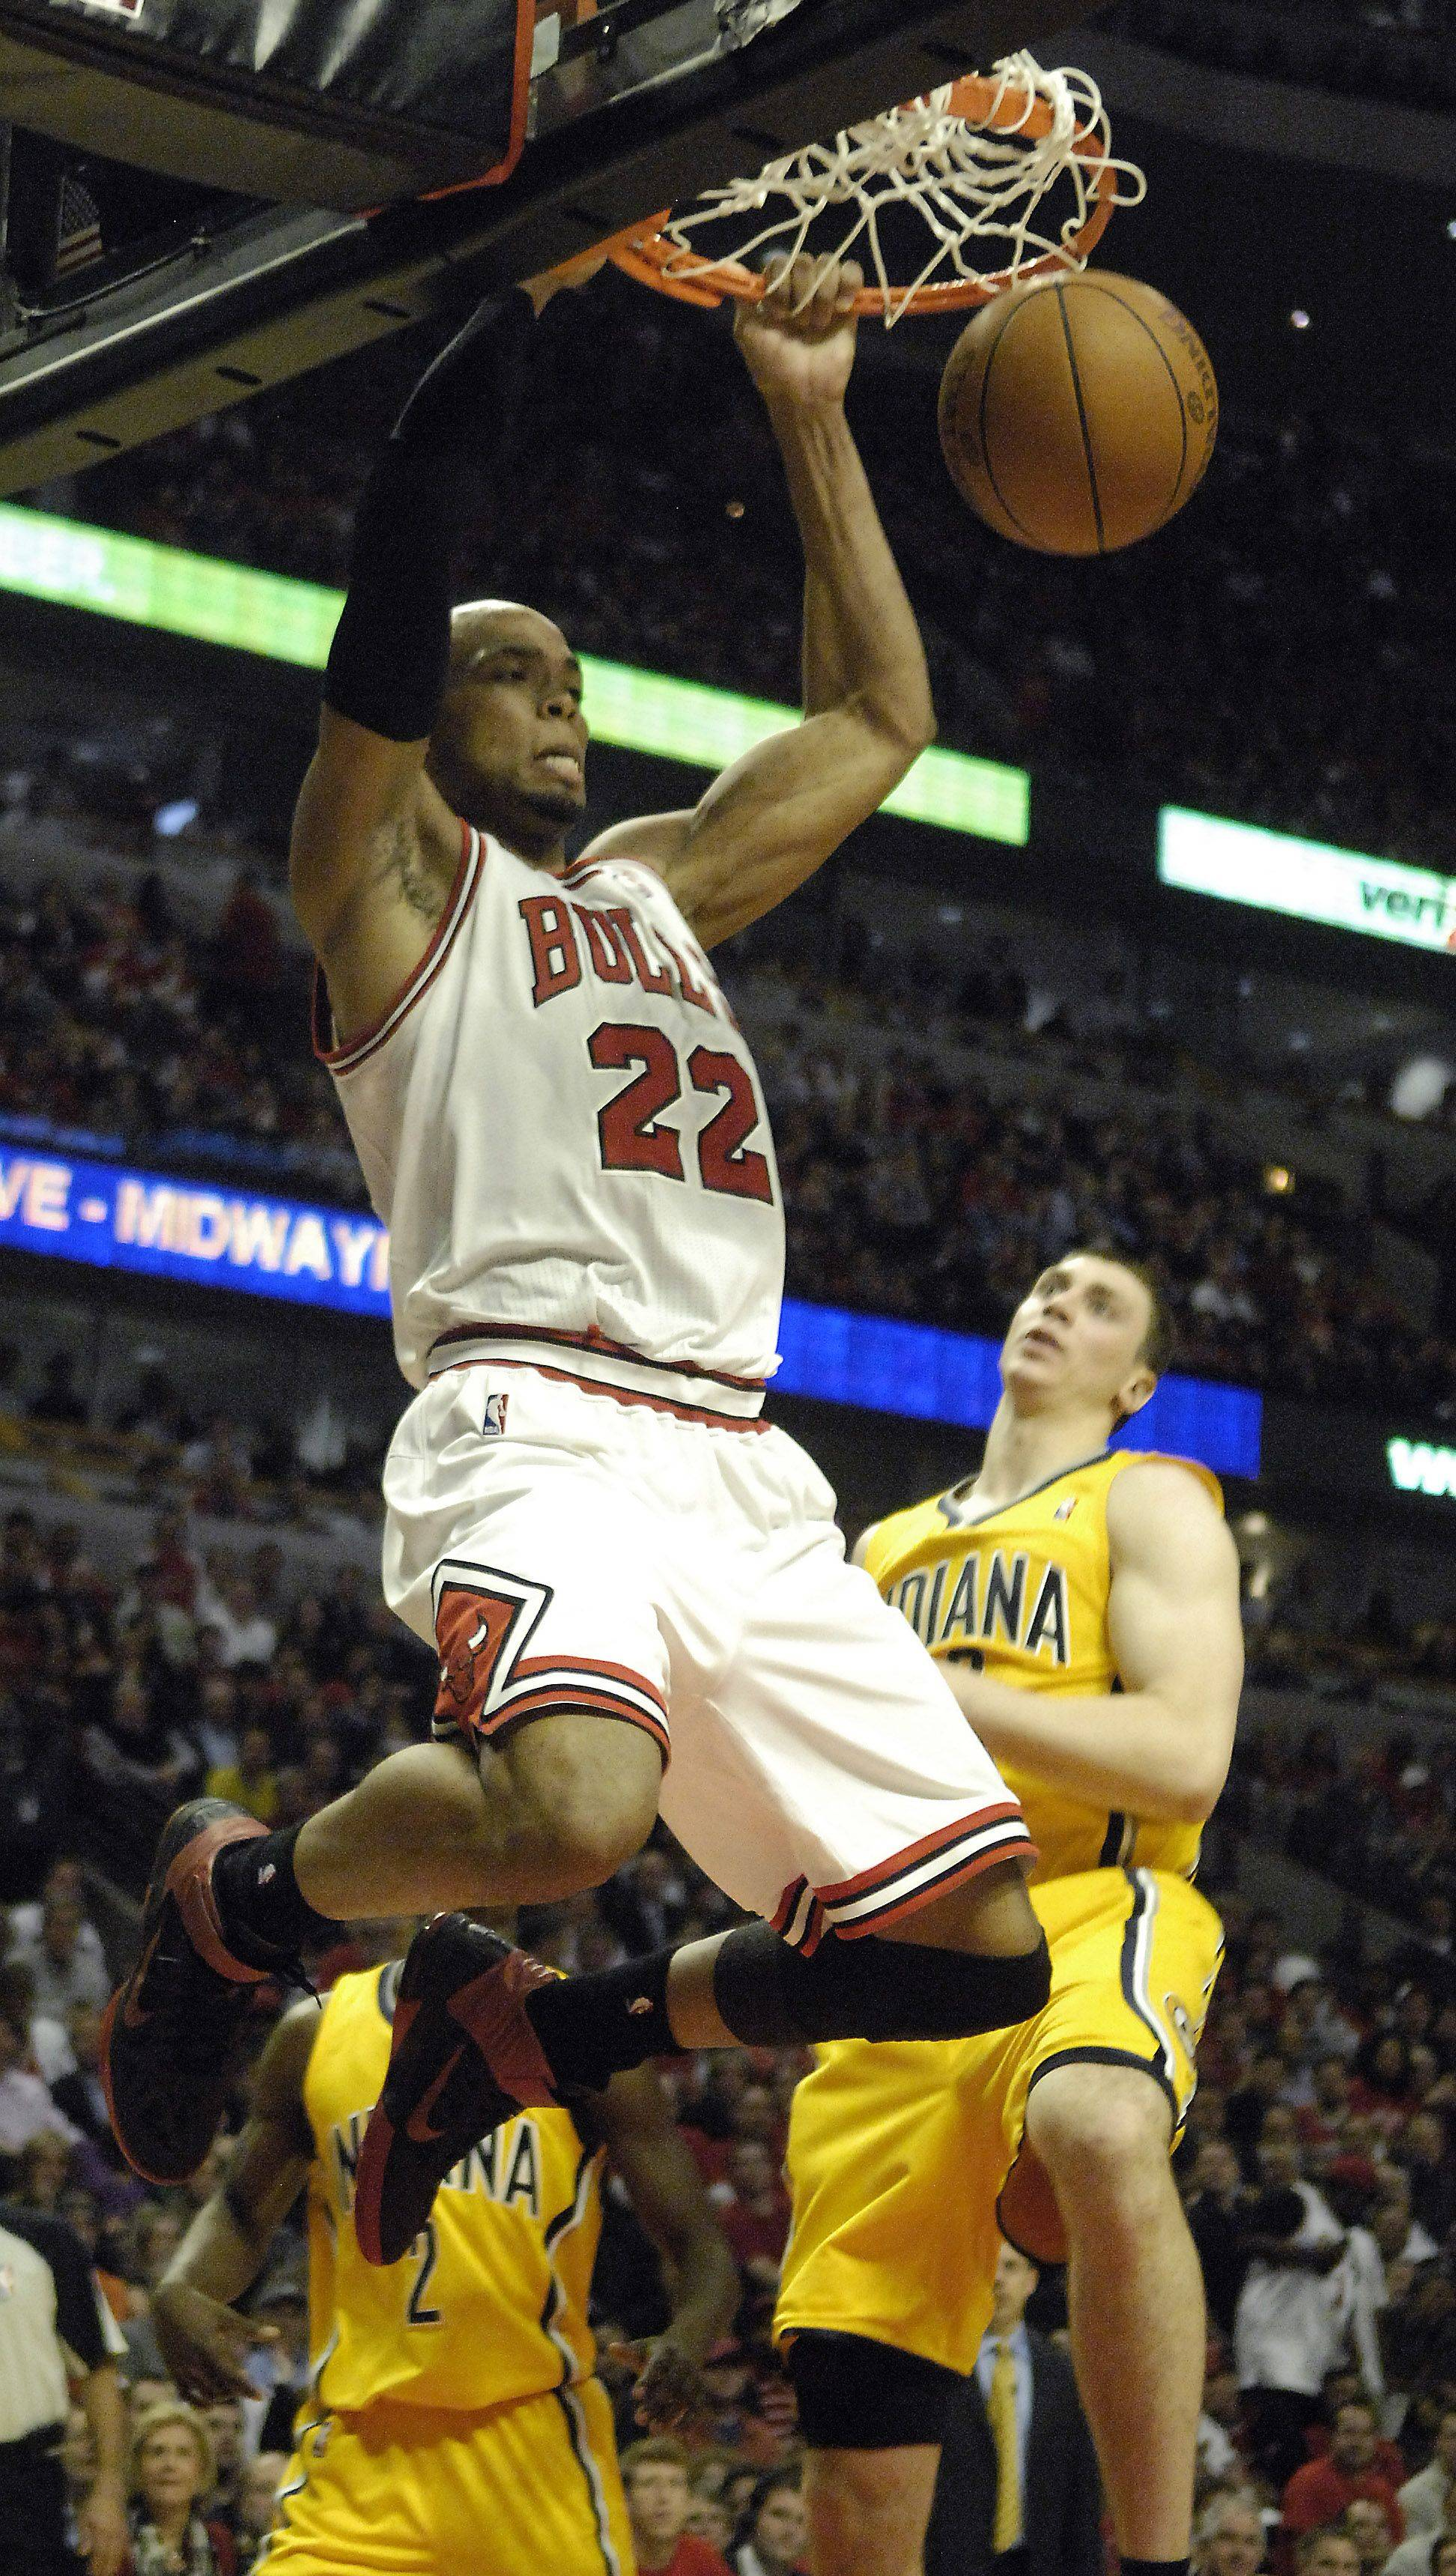 Taj Gibson throws down a dunk in front of Indiana Pacers' Tyler Hansbrough during game 5 in Chicago Tuesday.